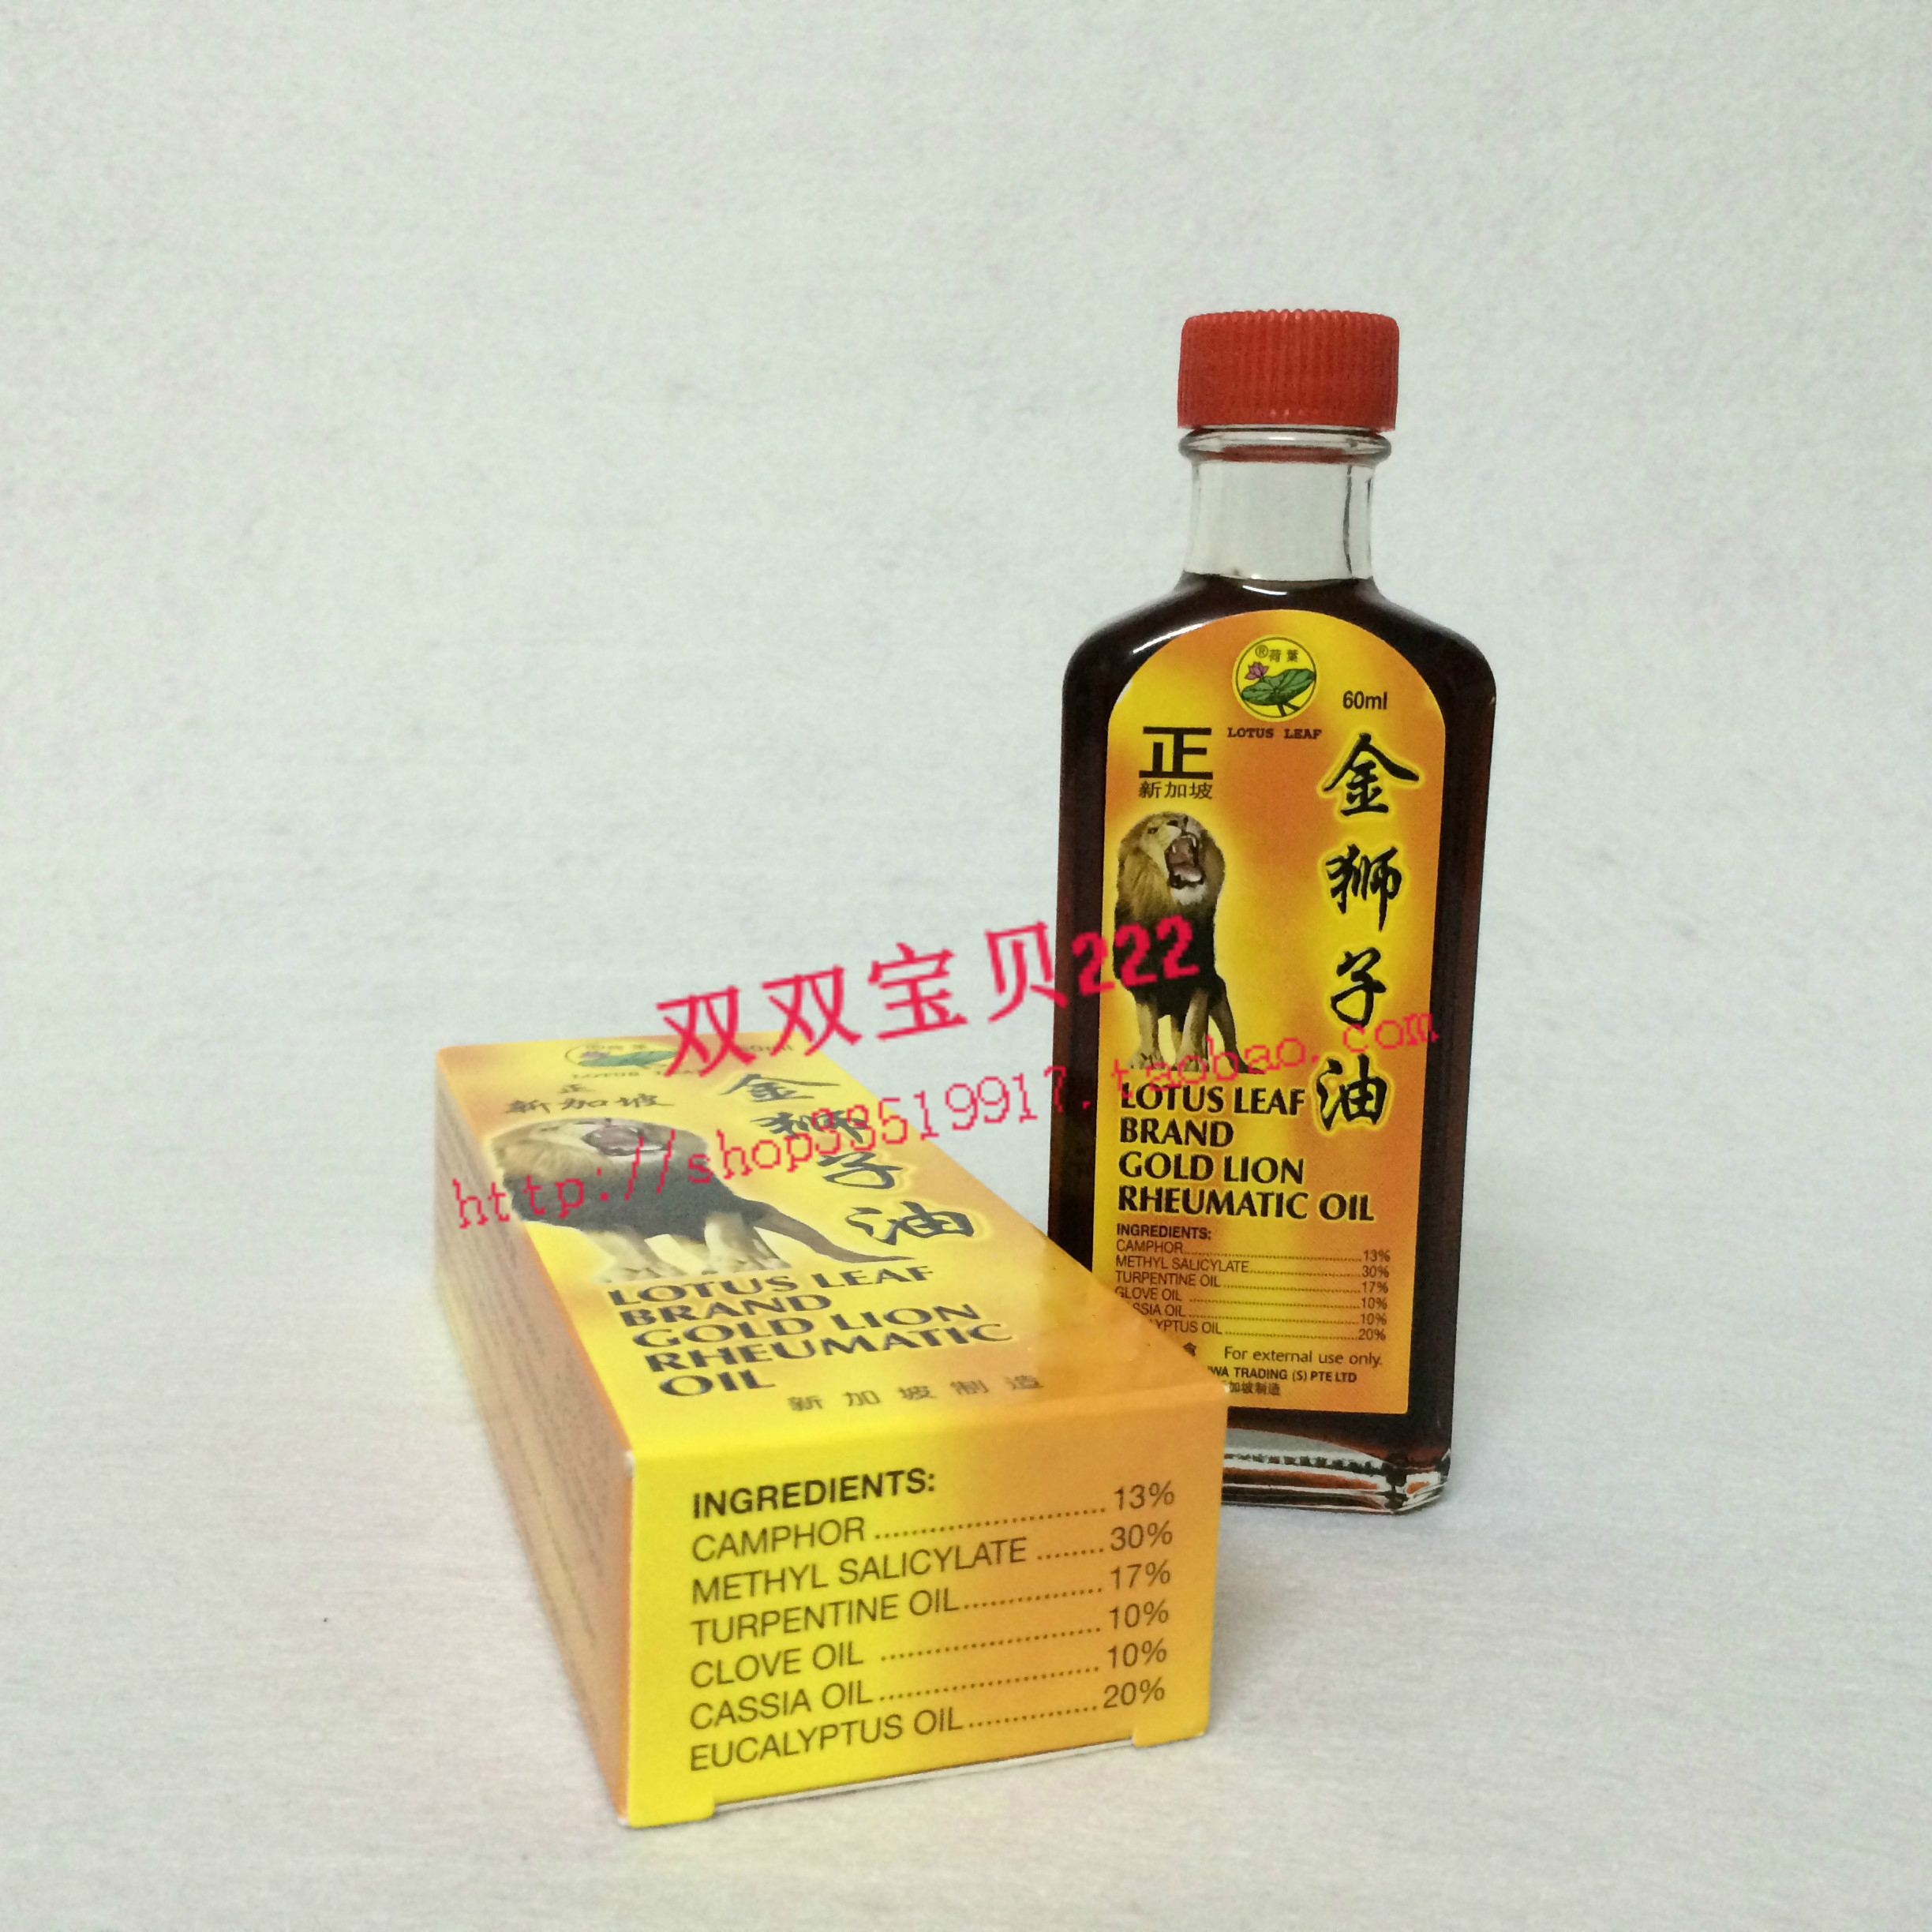 Singapore Chinese trade drug line lotus leaf gold lion oil 60ml back